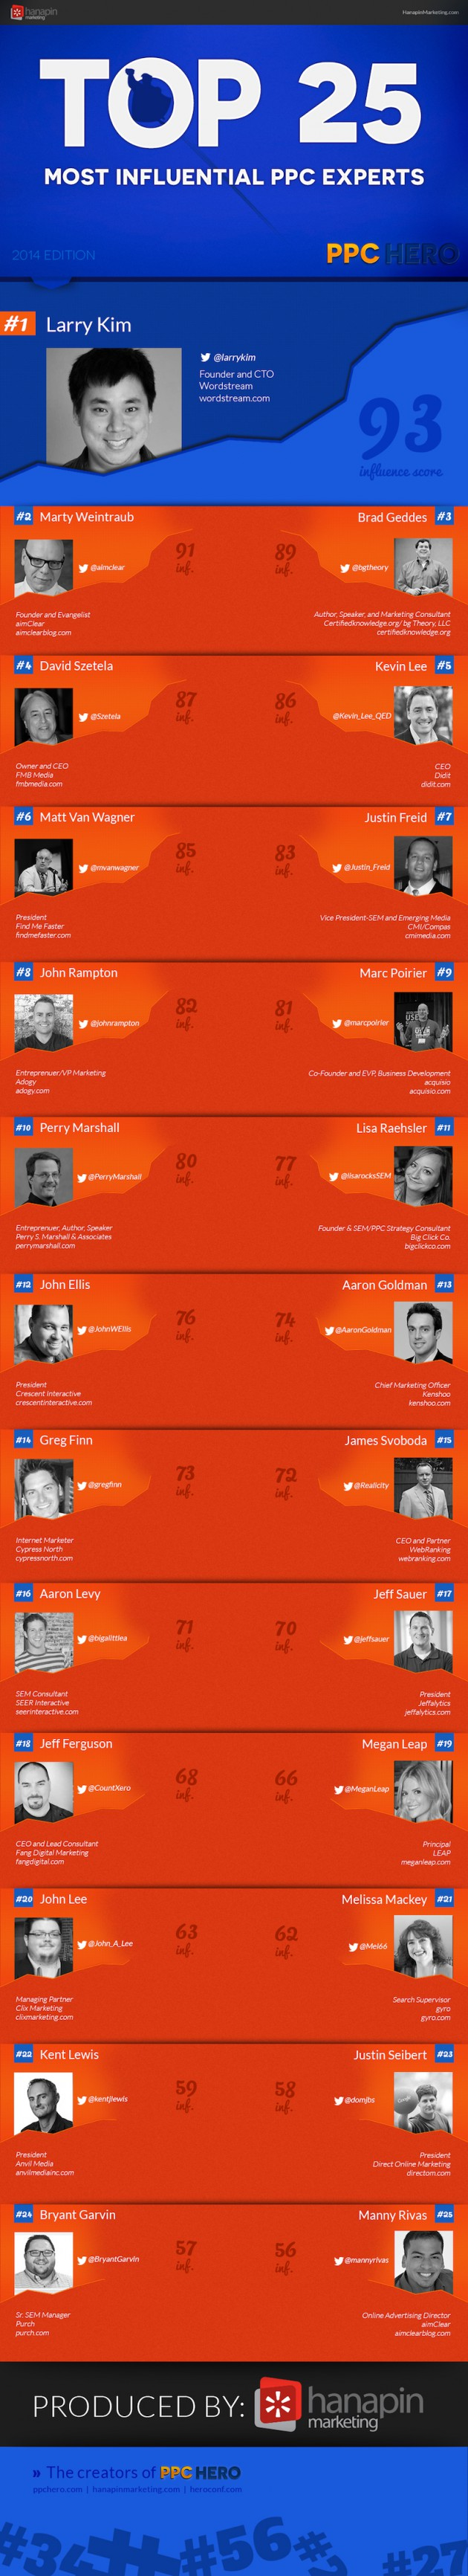 Top 25 Most Influential PPC Experts - 2014